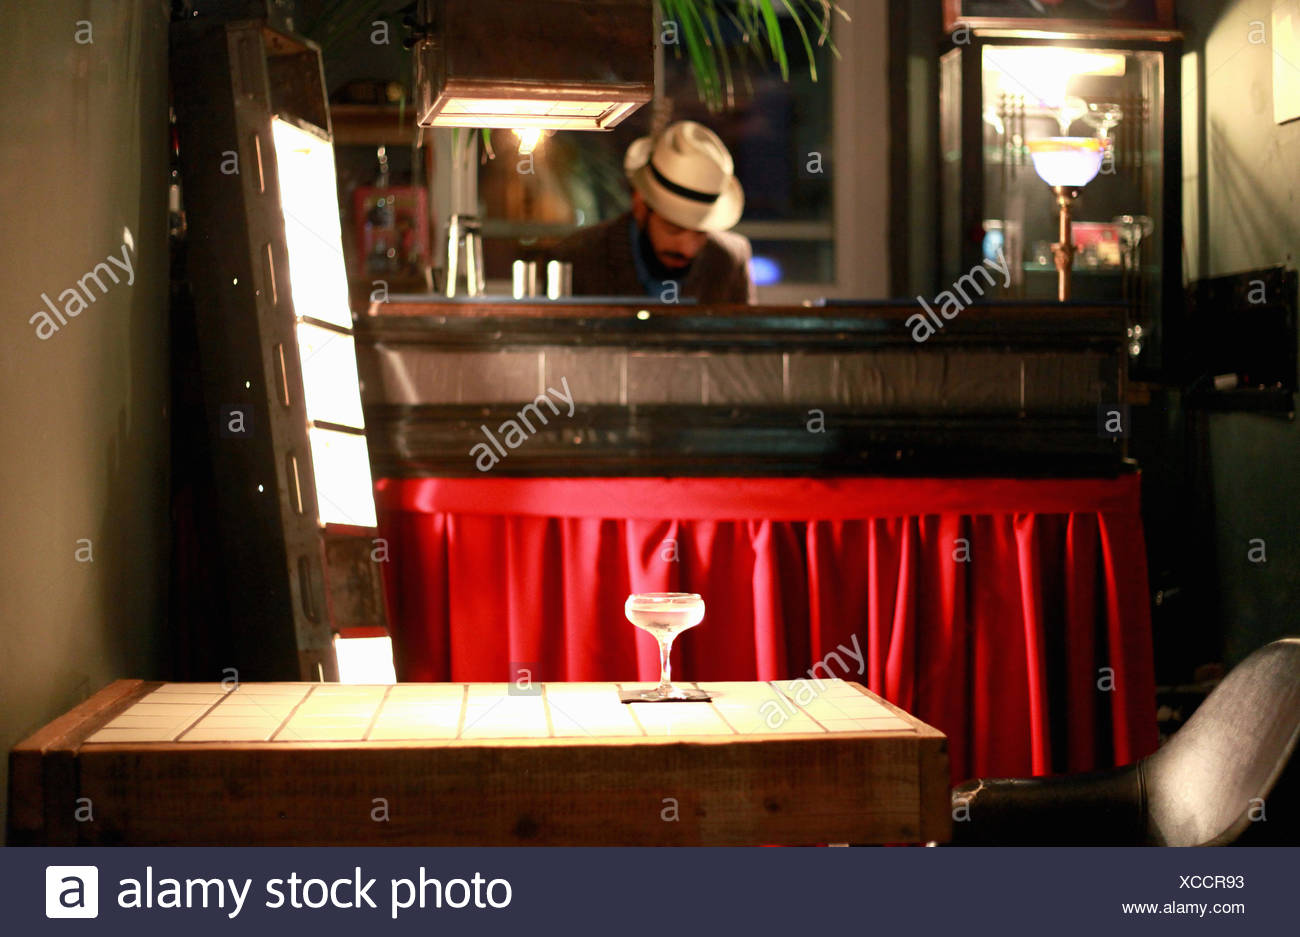 Cocktail on table, bartender behind counter at bar - Stock Image